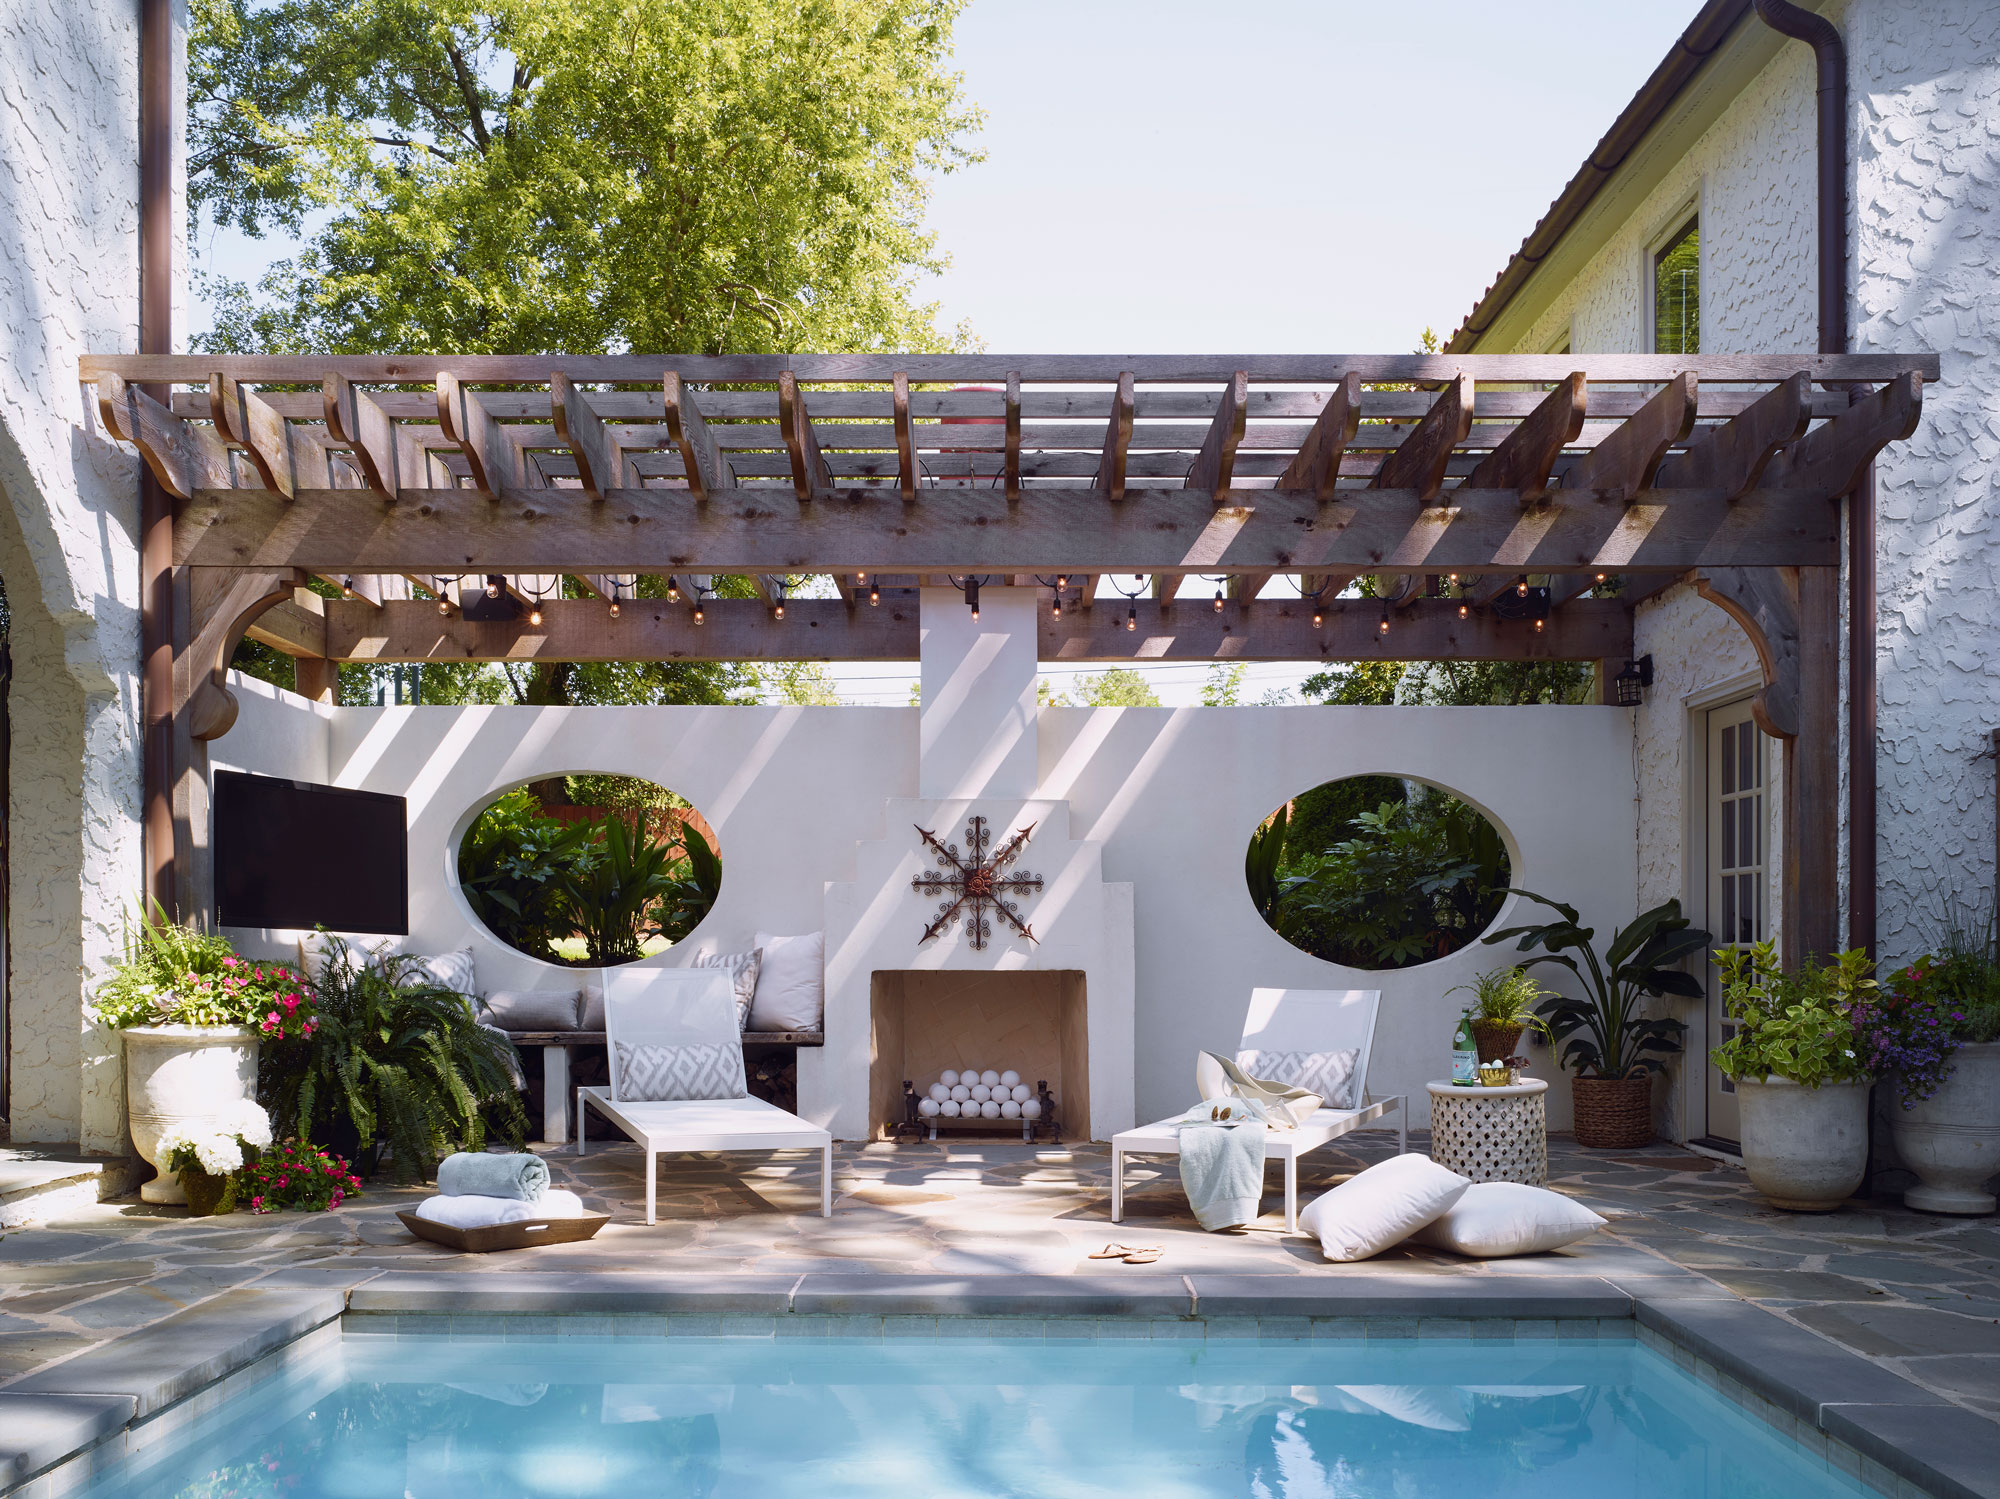 Pool Aus Paletten Viereckig 5 Summer Decorating Tips To Make Your Space The Place To Be